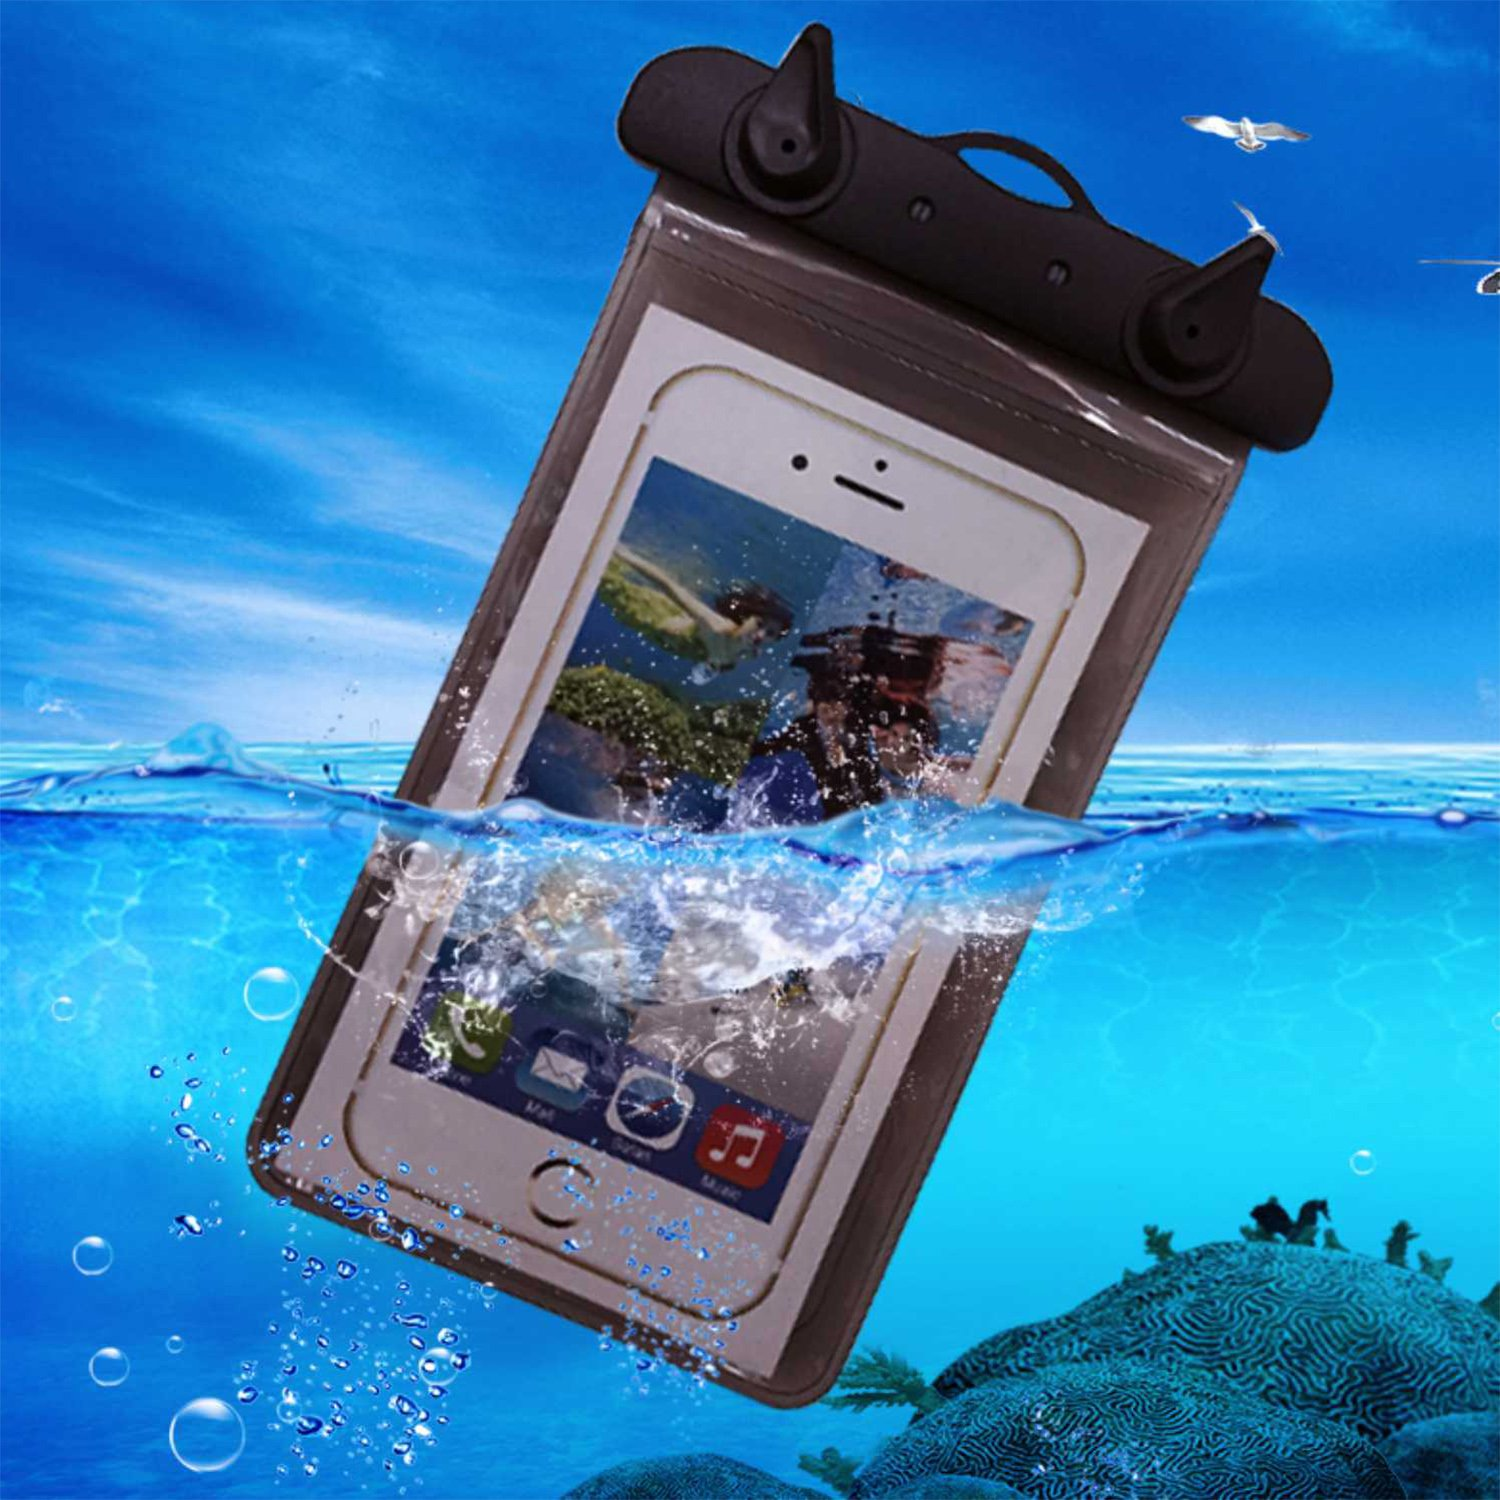 Dark grey free size Dandelion Waterproof Dry Bag  Roll Top Dry Compression Sack Keeps Gear Dry for Kayaking, Beach, Rafting, Boating, Hiking, Camping and Fishing with Waterproof Phone Case